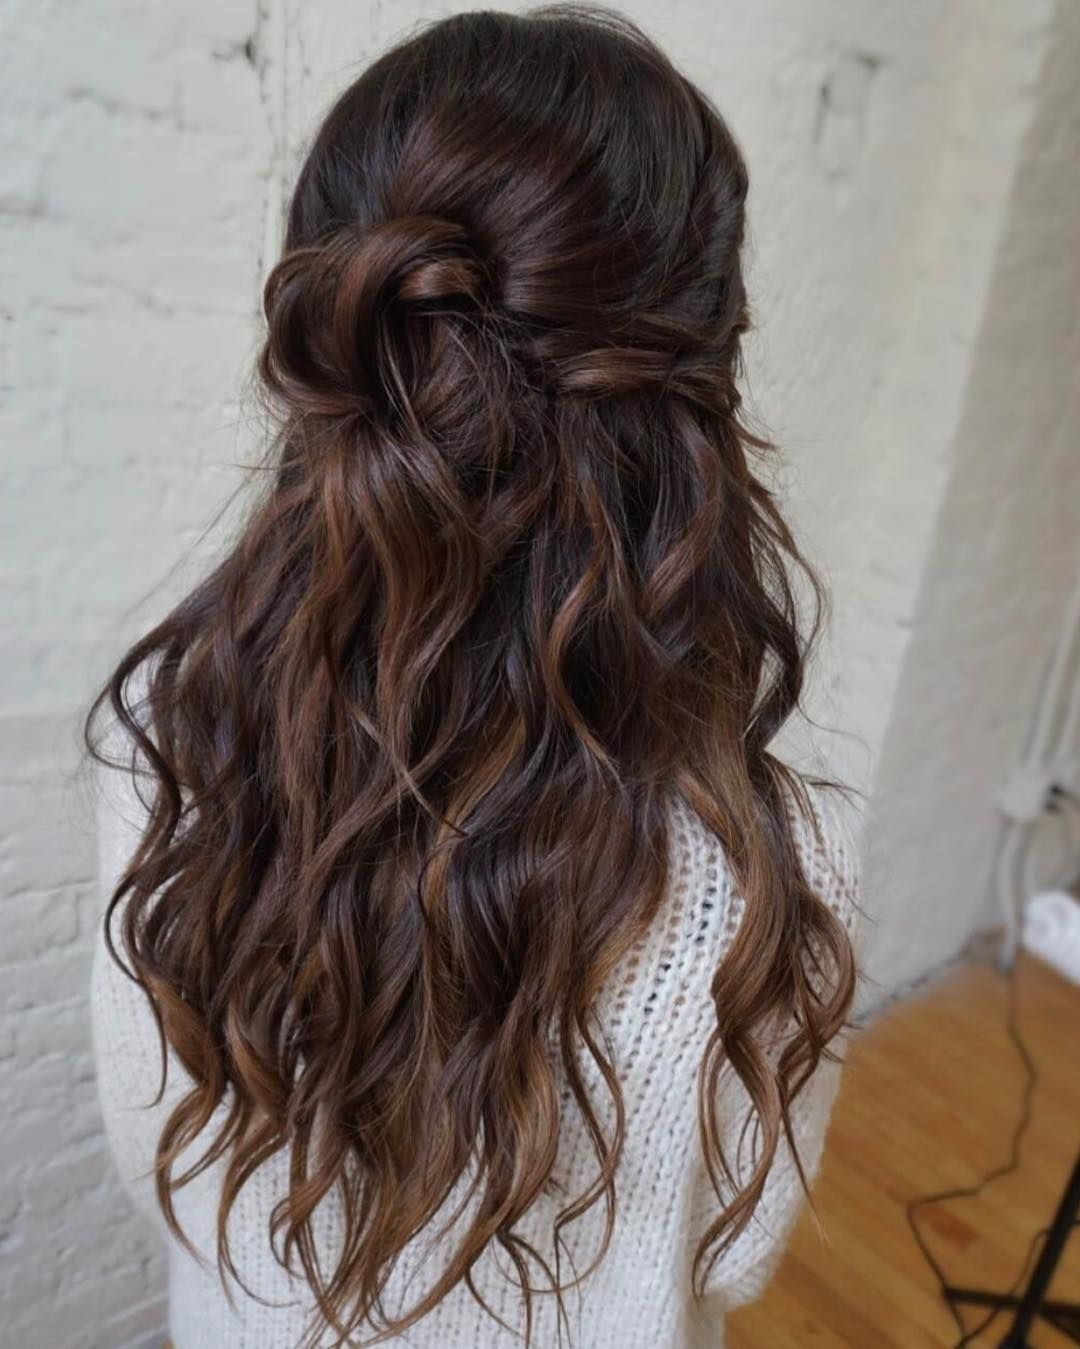 Hairstyle Gorgeous Bohogorgeous Boho Hairstyle Wedding Hair Brunette Hair Styles Wedding Hair Inspiration